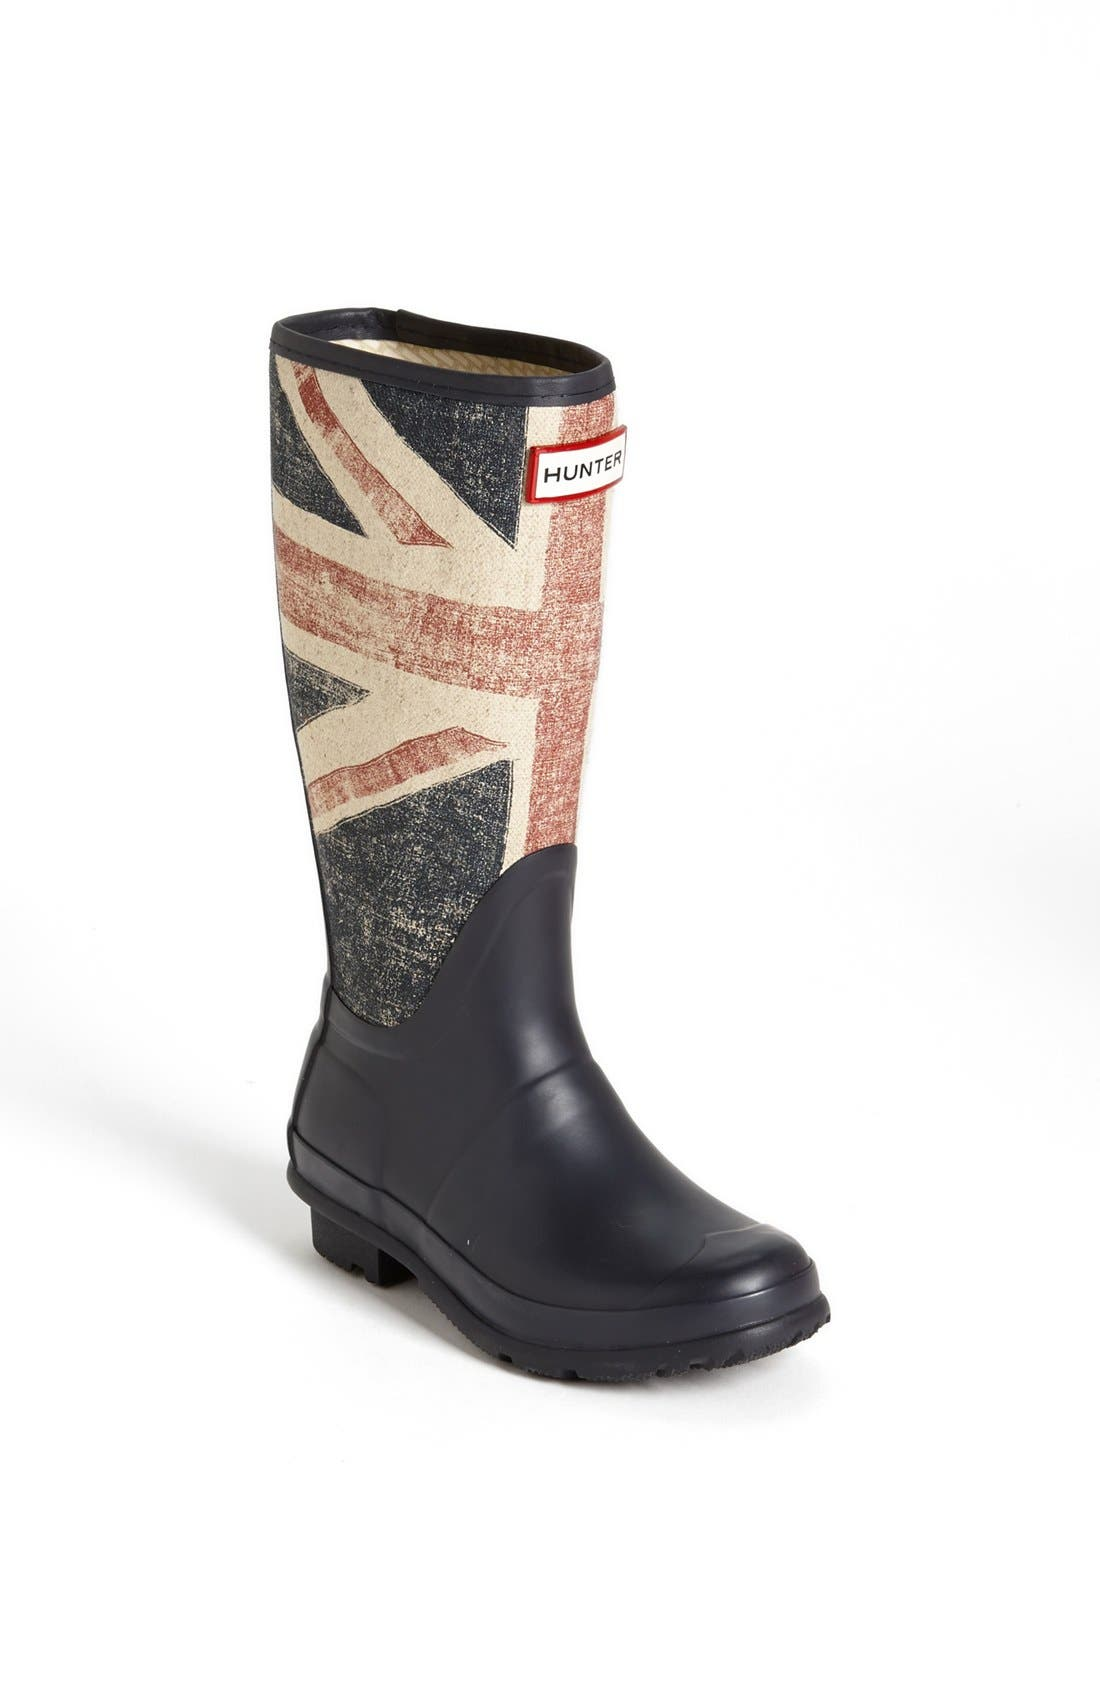 Alternate Image 1 Selected - Hunter 'Brit' Waterproof Rain Boot (Little Kid & Big Kid)